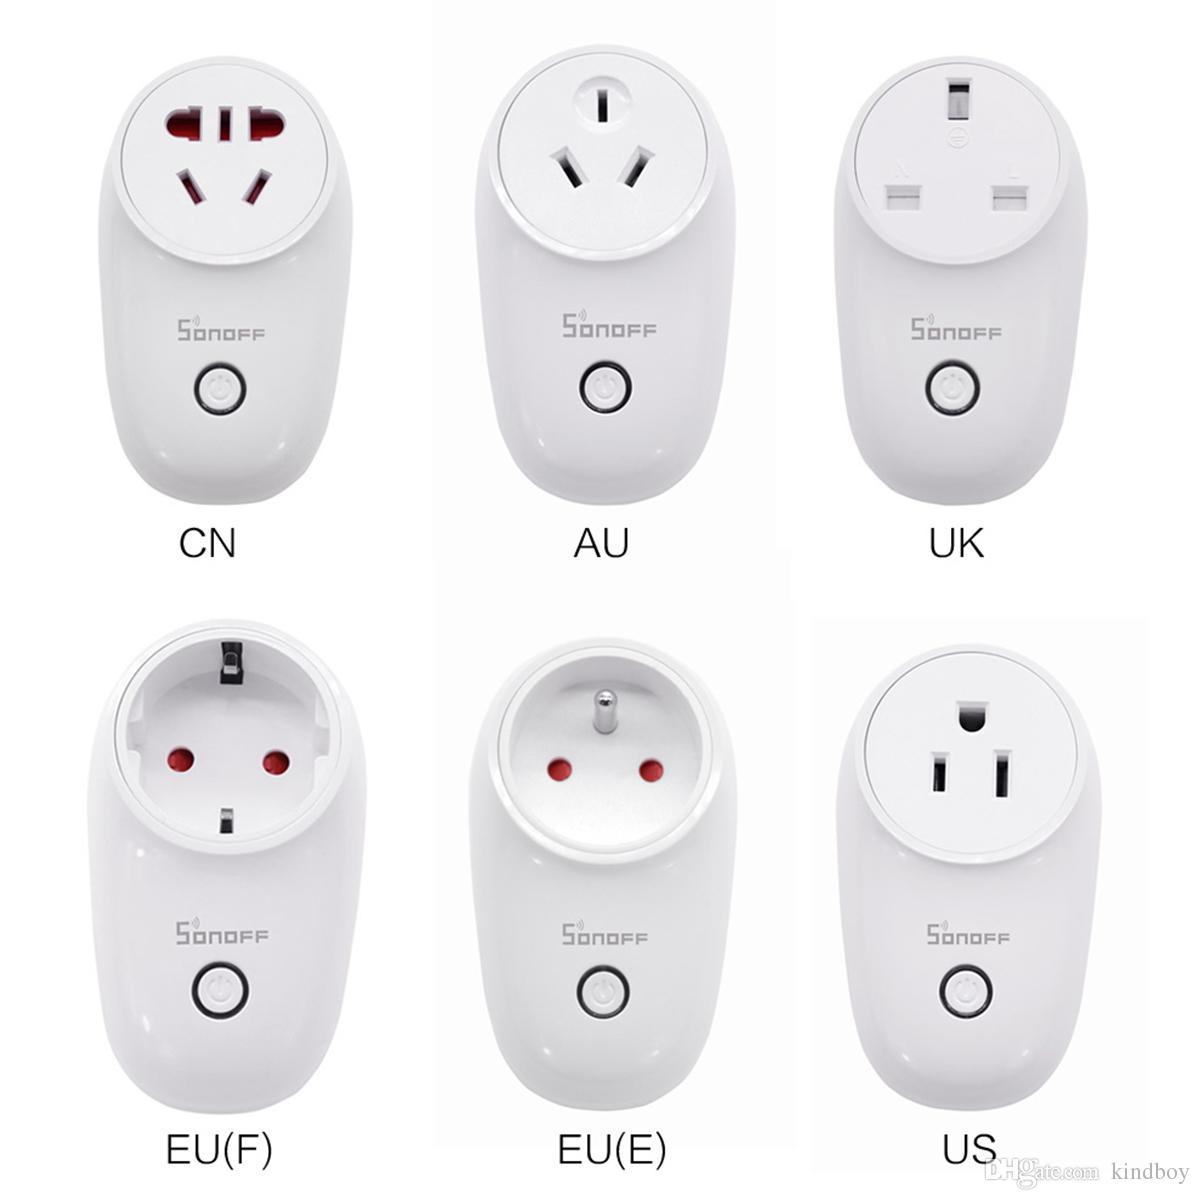 Sonoff S26 WiFi Smart Socket US/UK/CN/AU/EU Wireless Plug Power Sockets Smart Home Switch